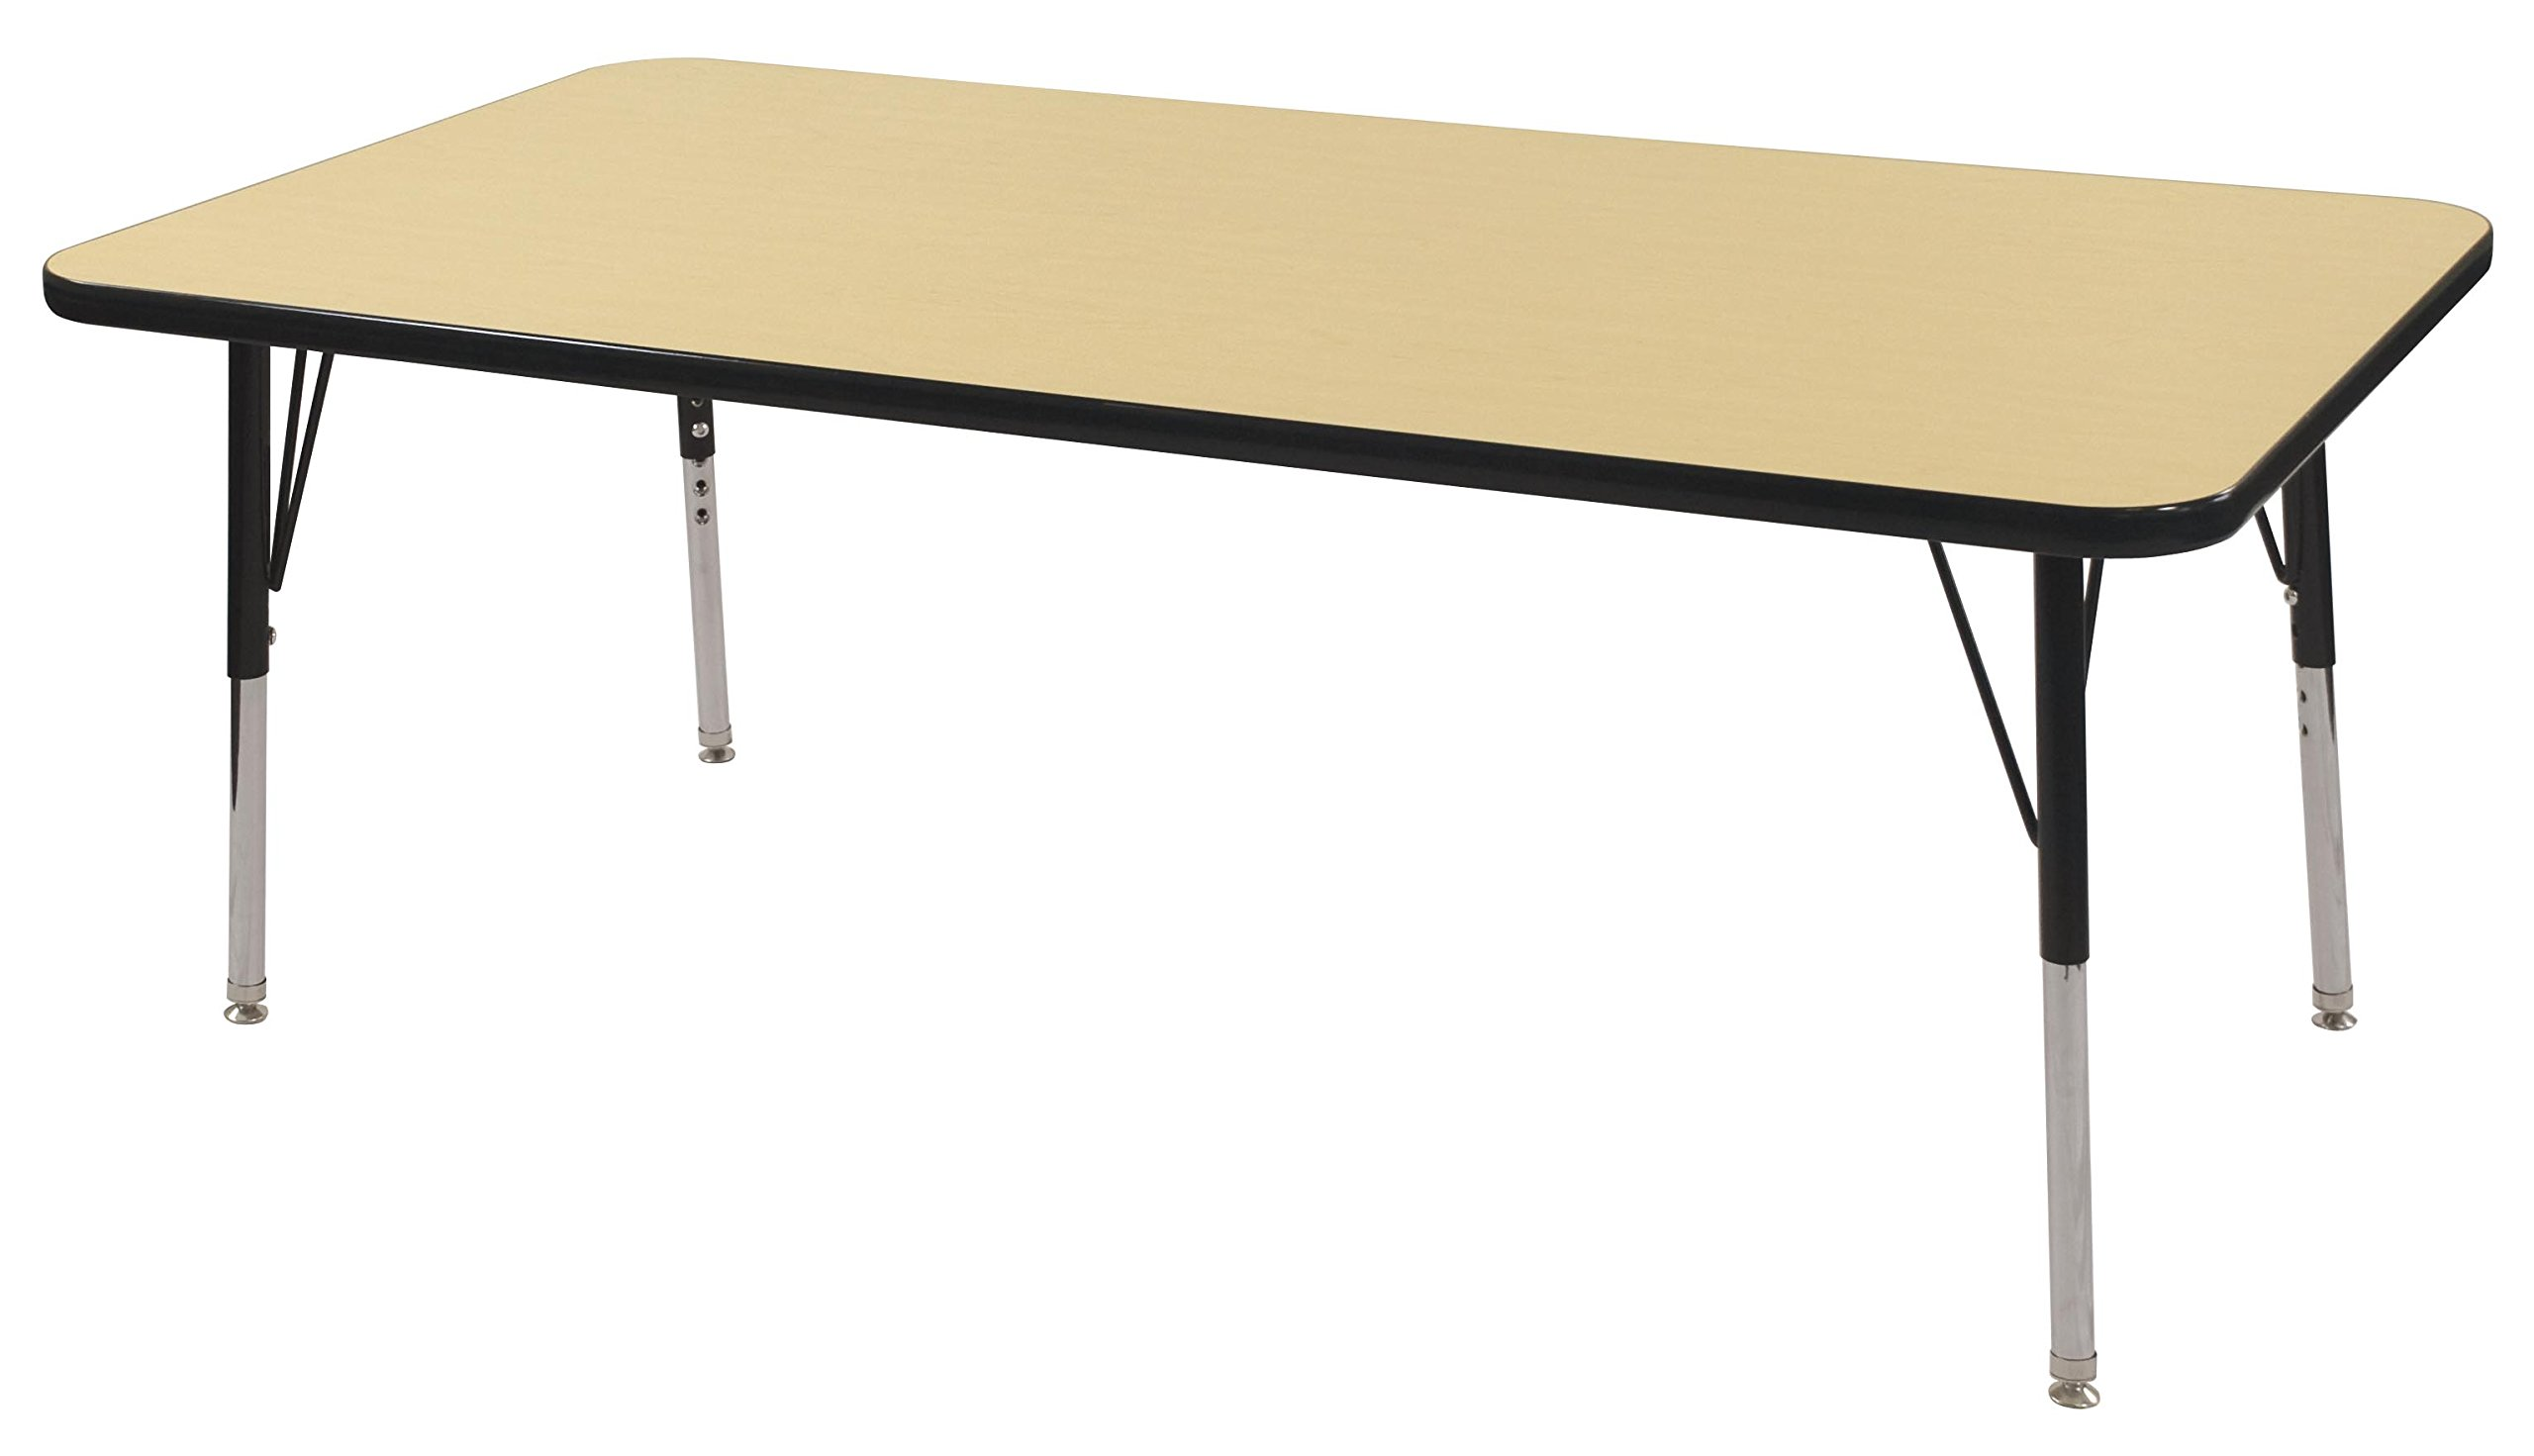 ECR4Kids Mesa Thermo-fused 30'' x 60'' Rectangular School Activity Table, Standard Legs w/ Swivel Glides, Adjustable Height 19-30 inch (Maple/Black)